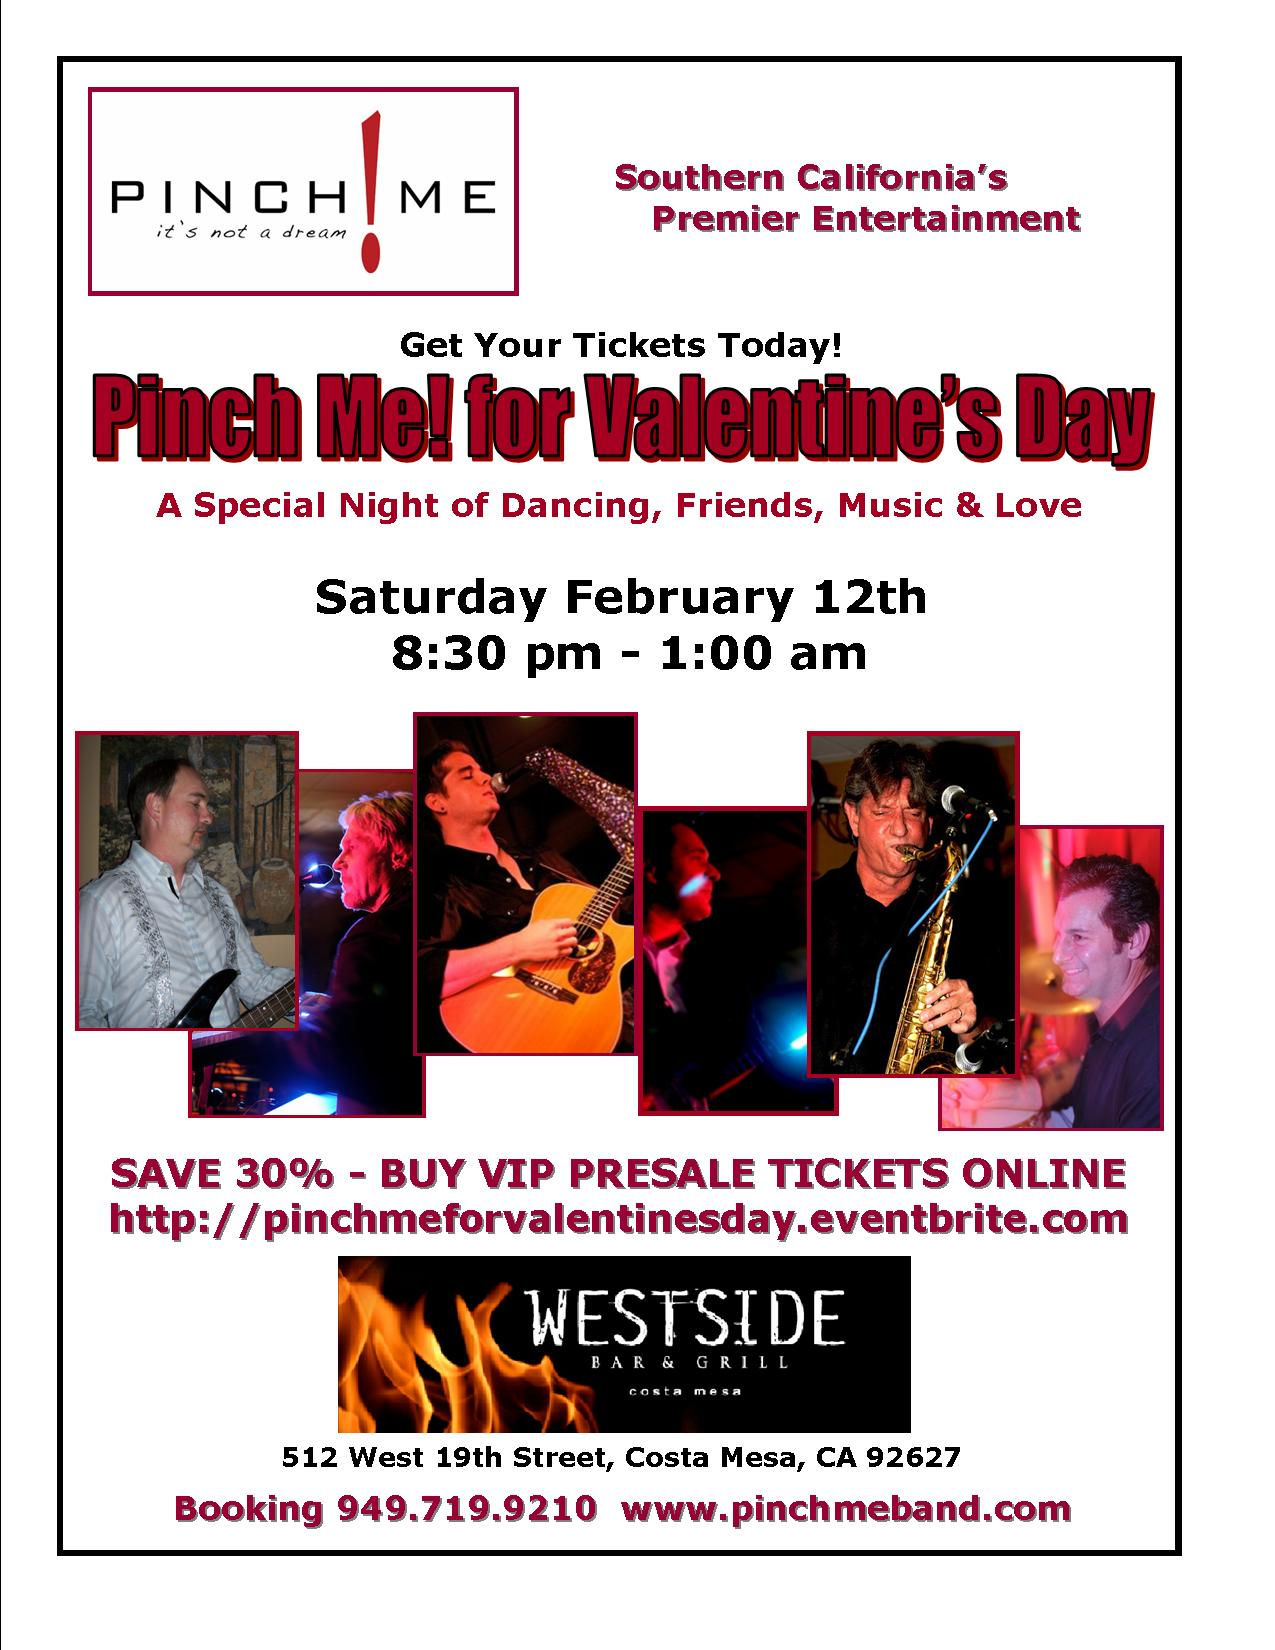 Pinch Me! for Valentine's Day Poster